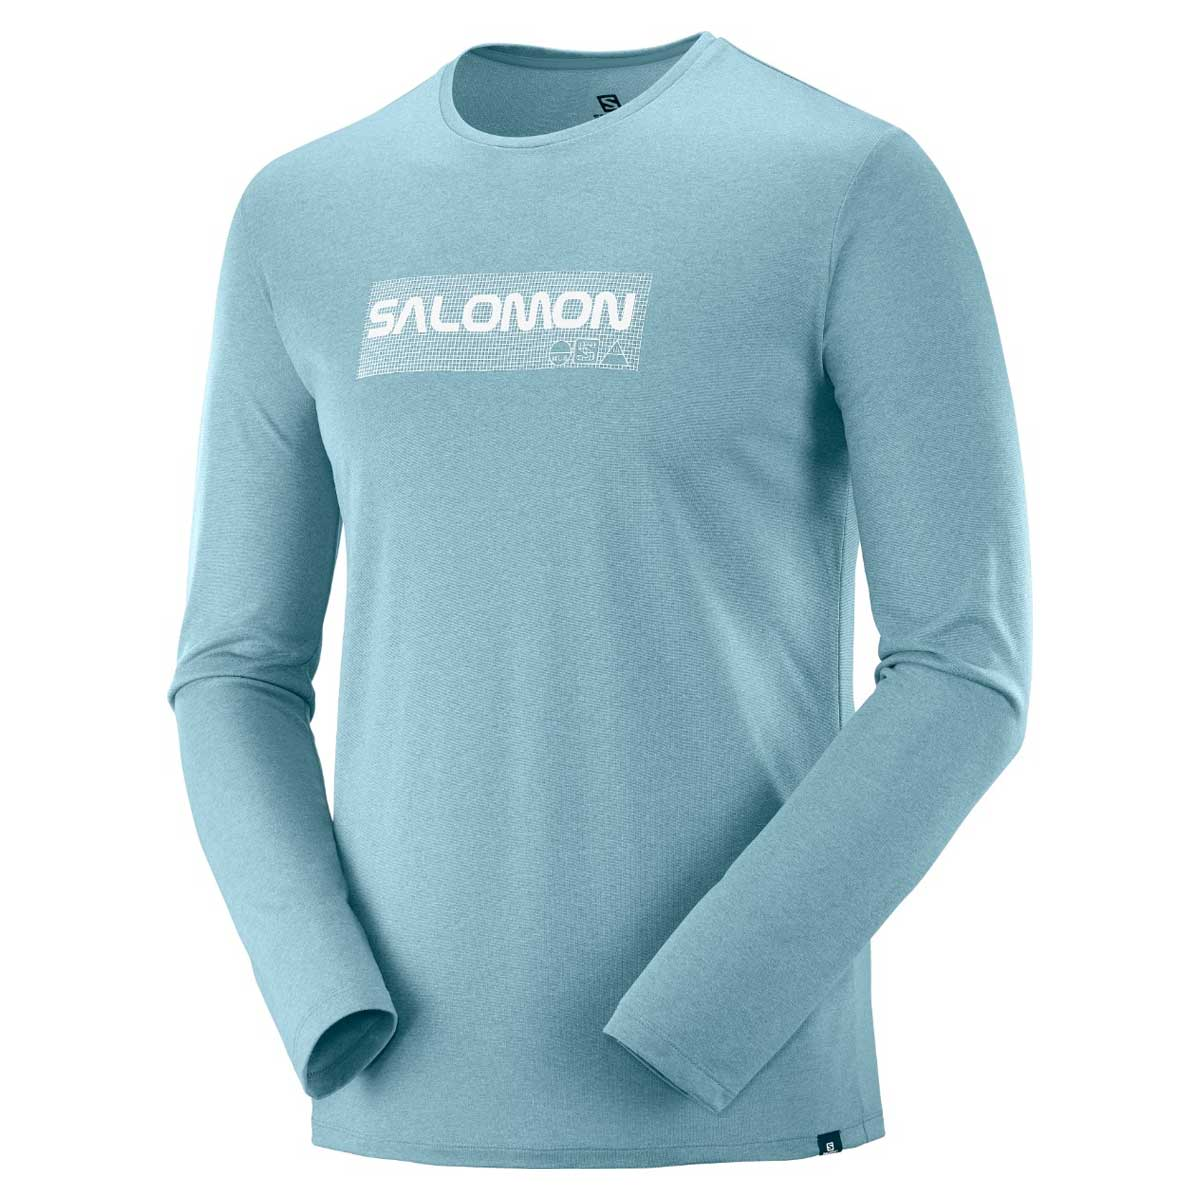 Salomon Men's Agile Graphic Long Sleeve Tee in Smoke Blue and Stone Blue